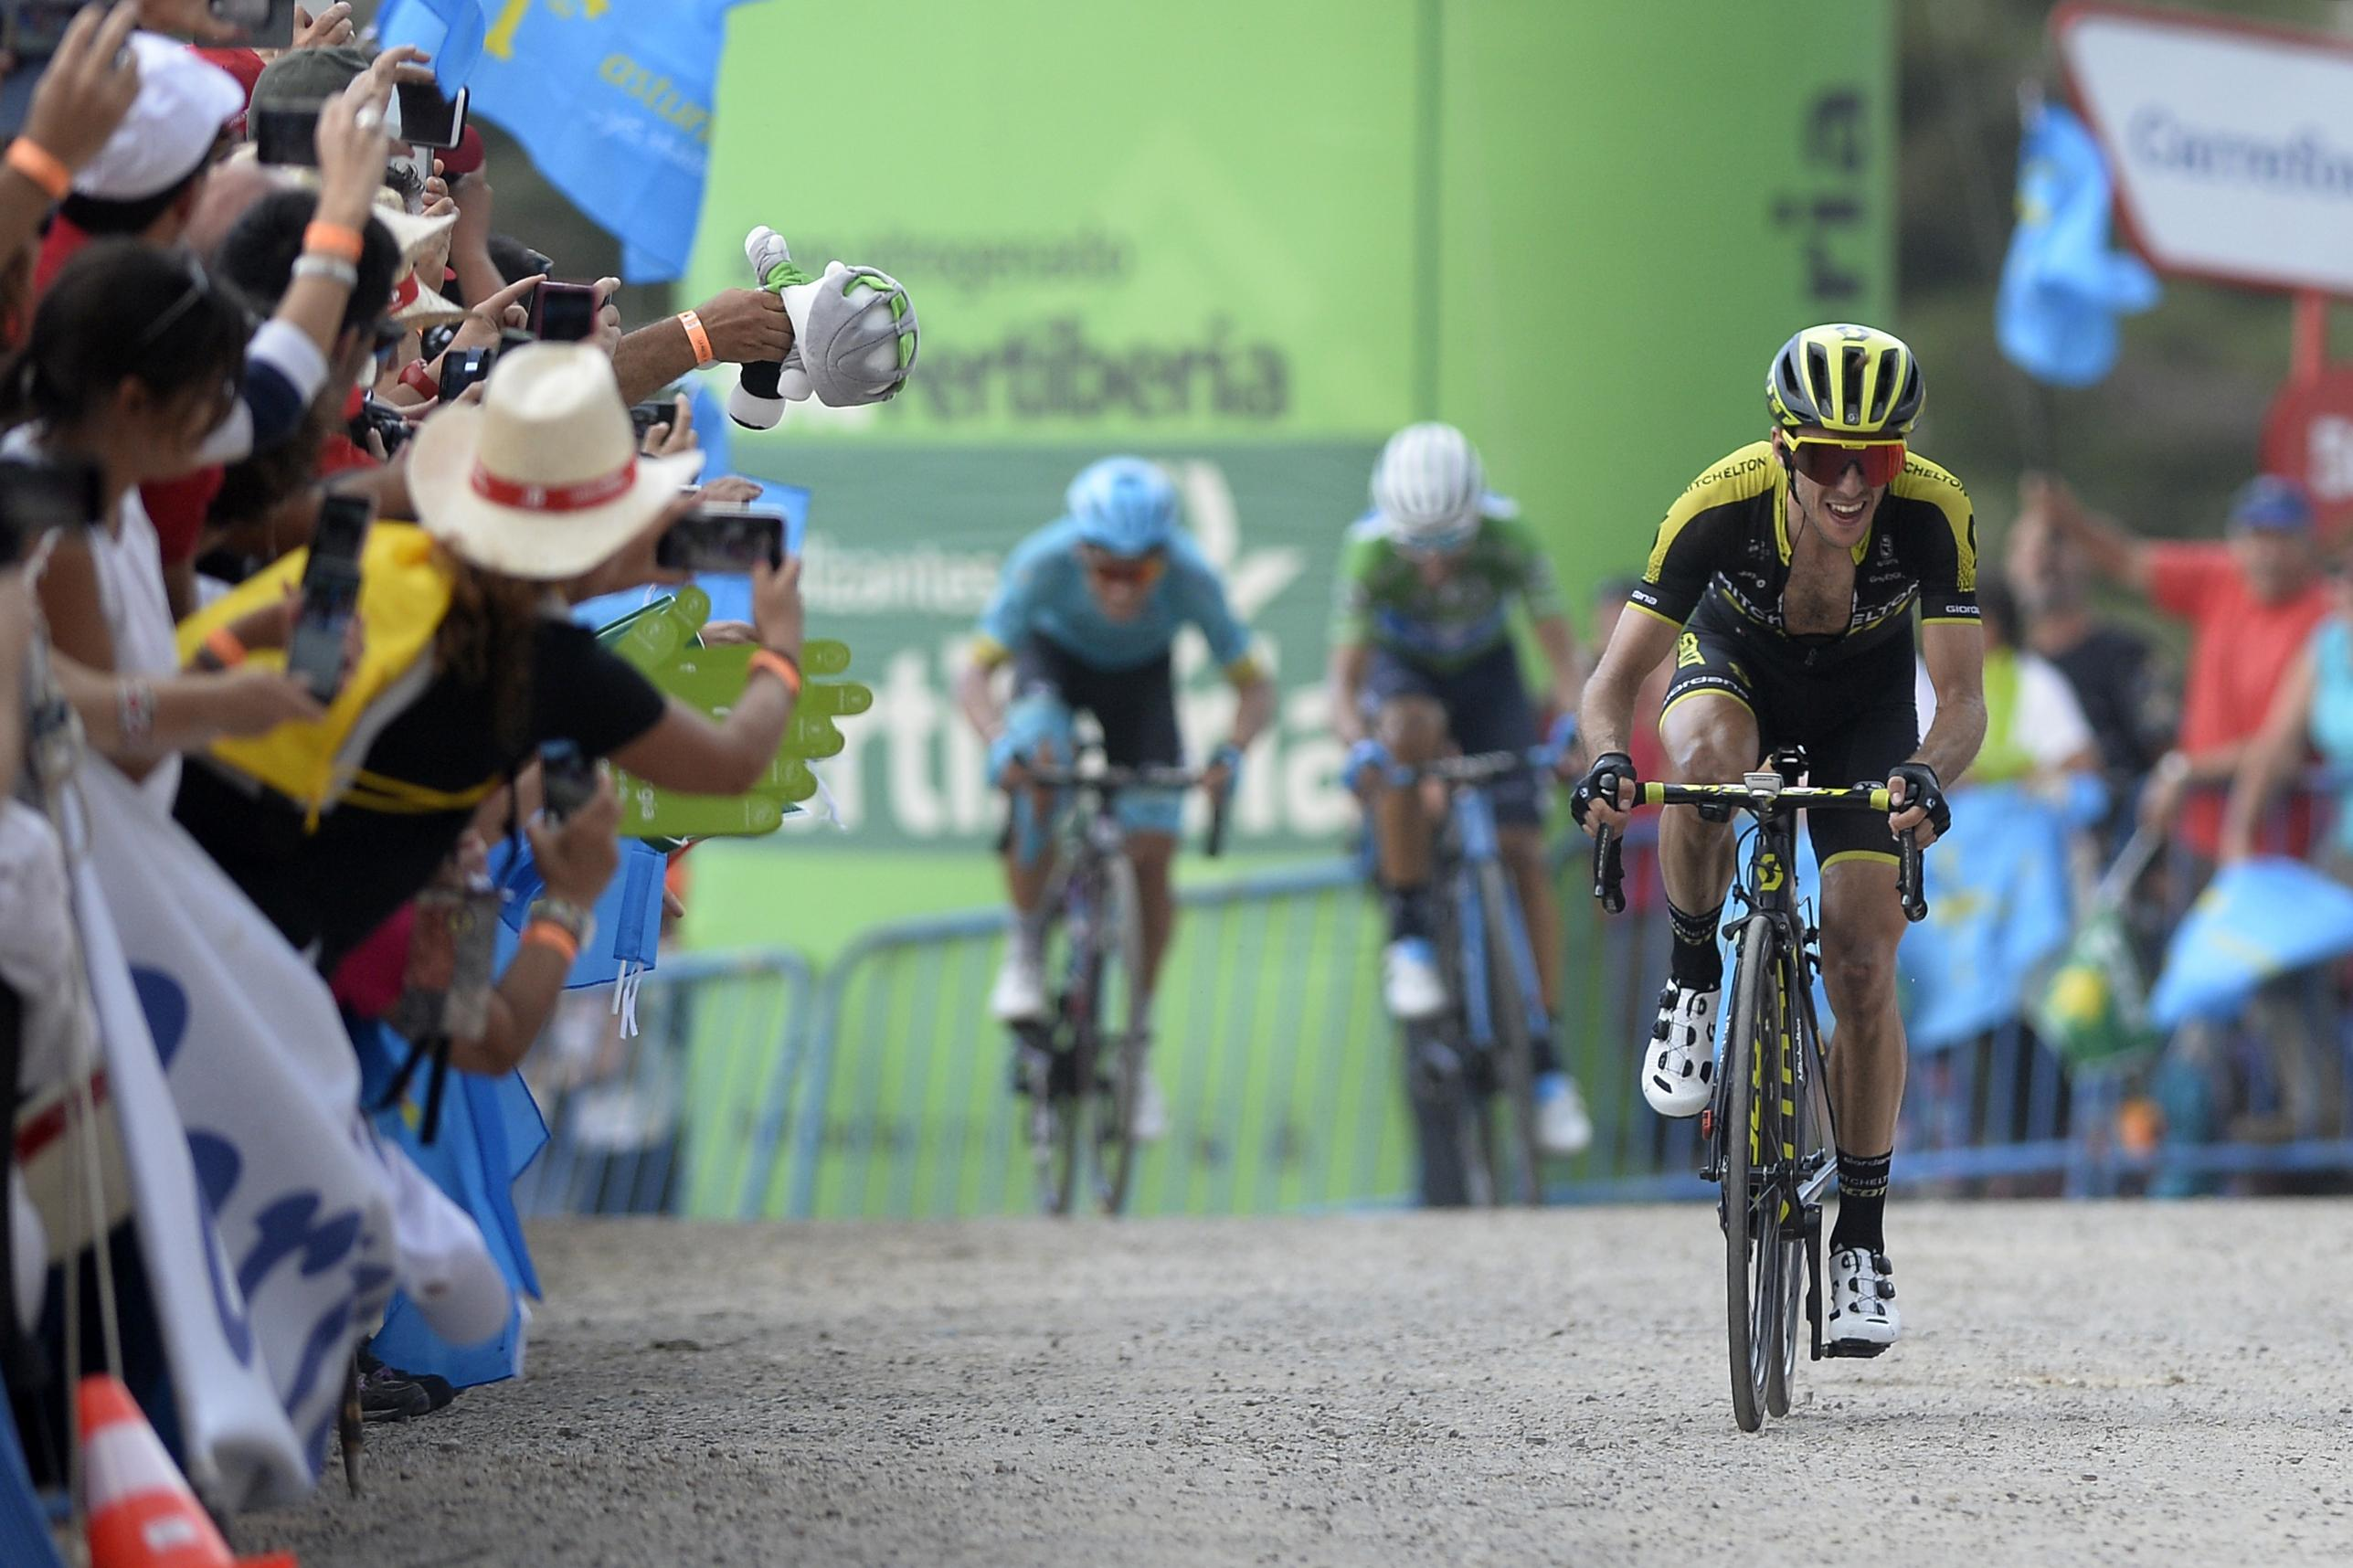 Yates beat his rivals by 2sec on the second of three big mountain stages in a row